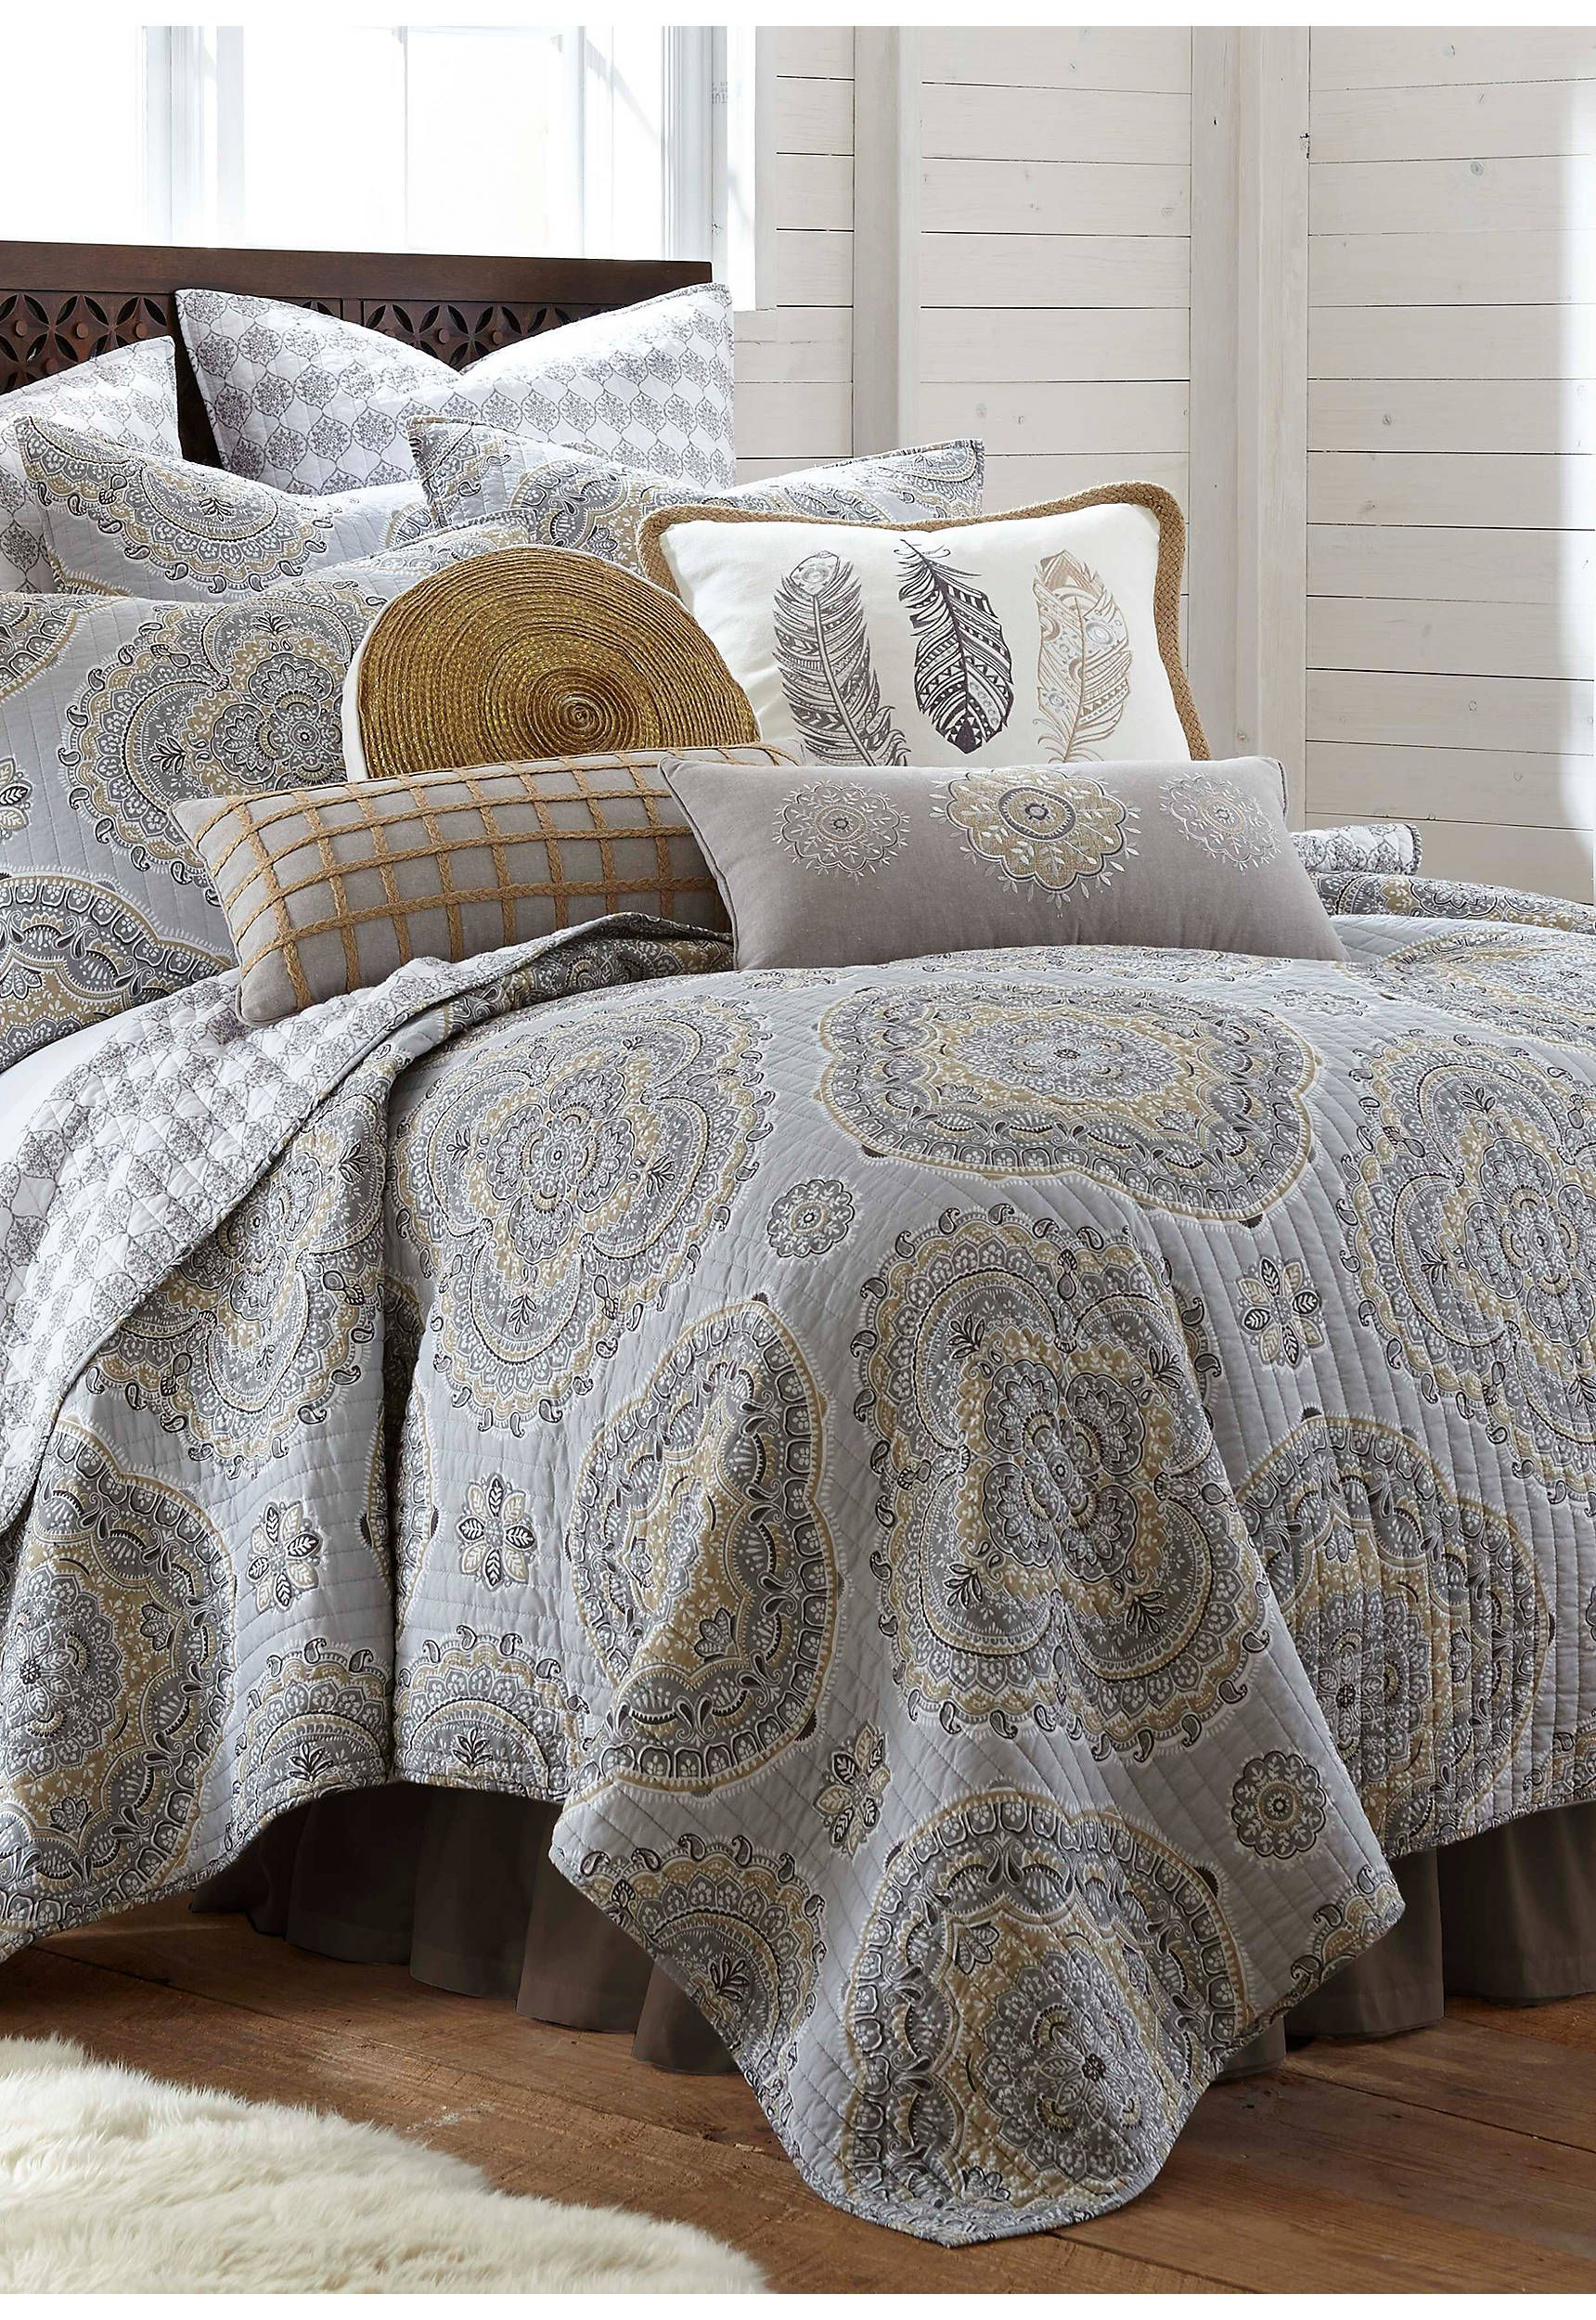 Neutral Bedding Sets King.Levtex Zarya Neutral Quilt Set In 2019 Quilt Sets King